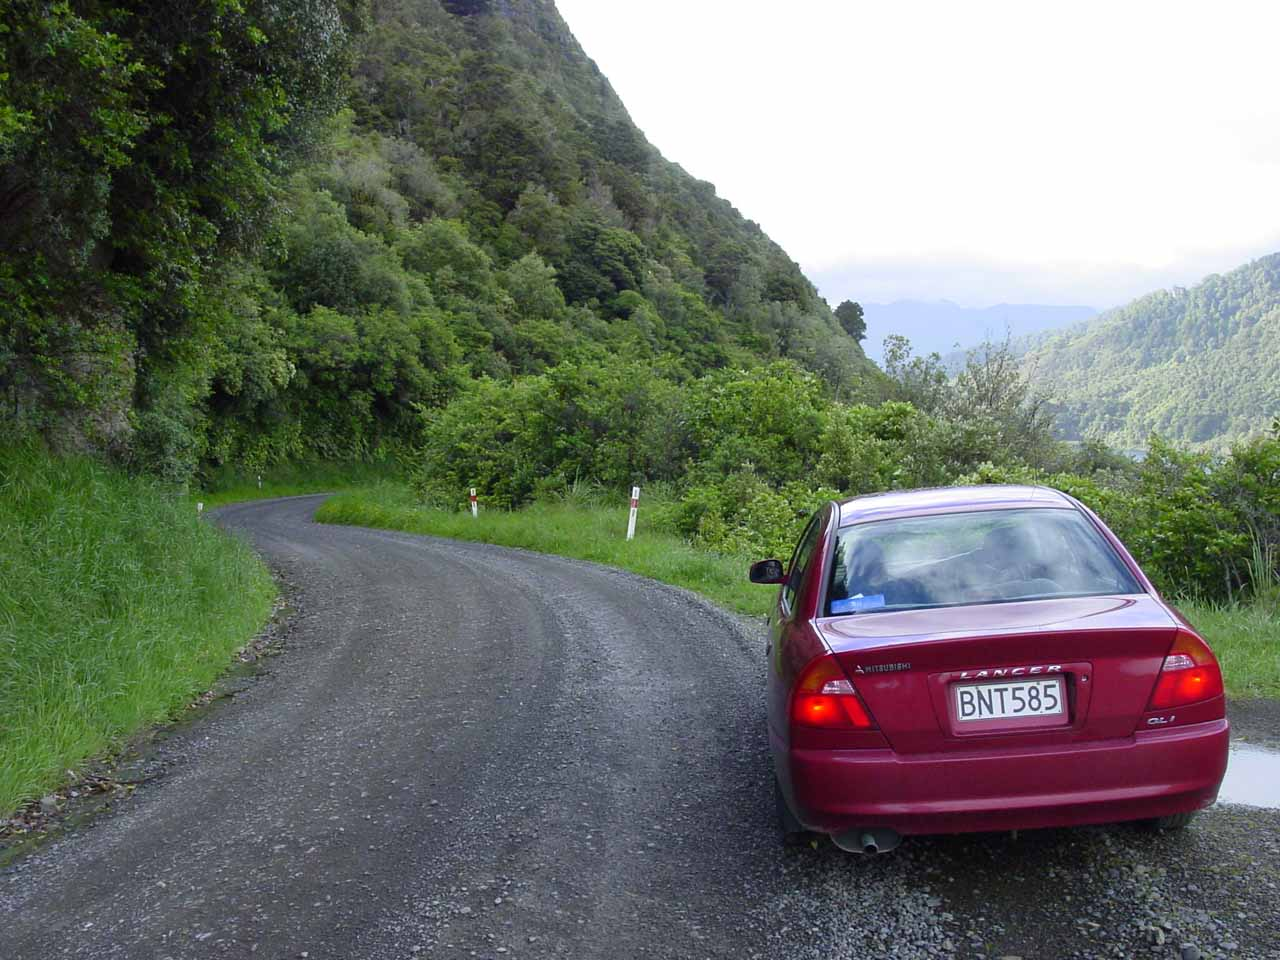 This was the unsealed road we had driven on for a few hours just to even get close to Mokau Falls